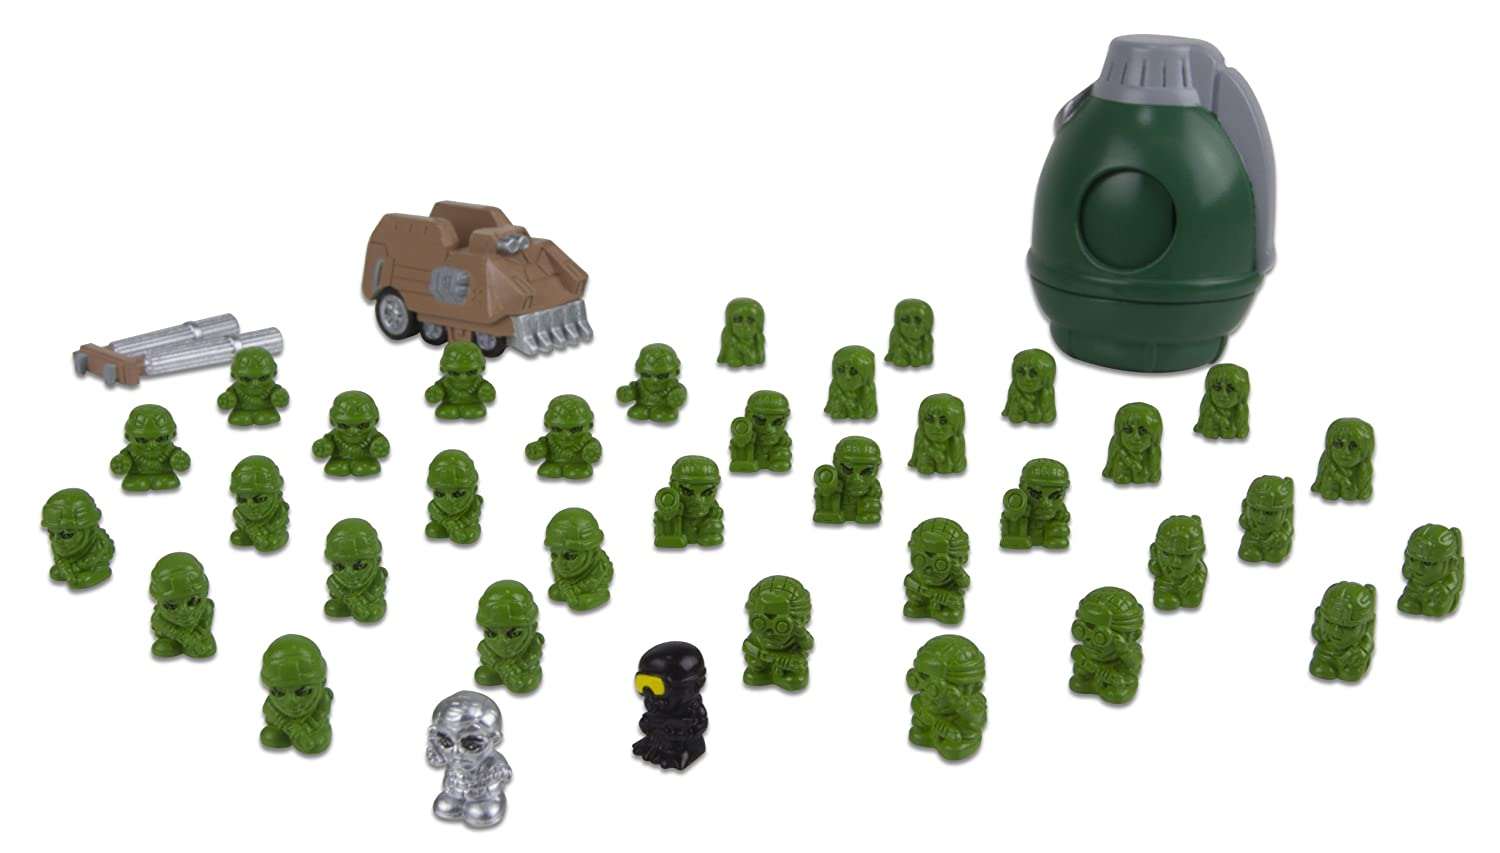 Military Crew Blip Toys 36-Piece Squinkies for Boys Zinkies Import 37957 ds-tru-962DDC28